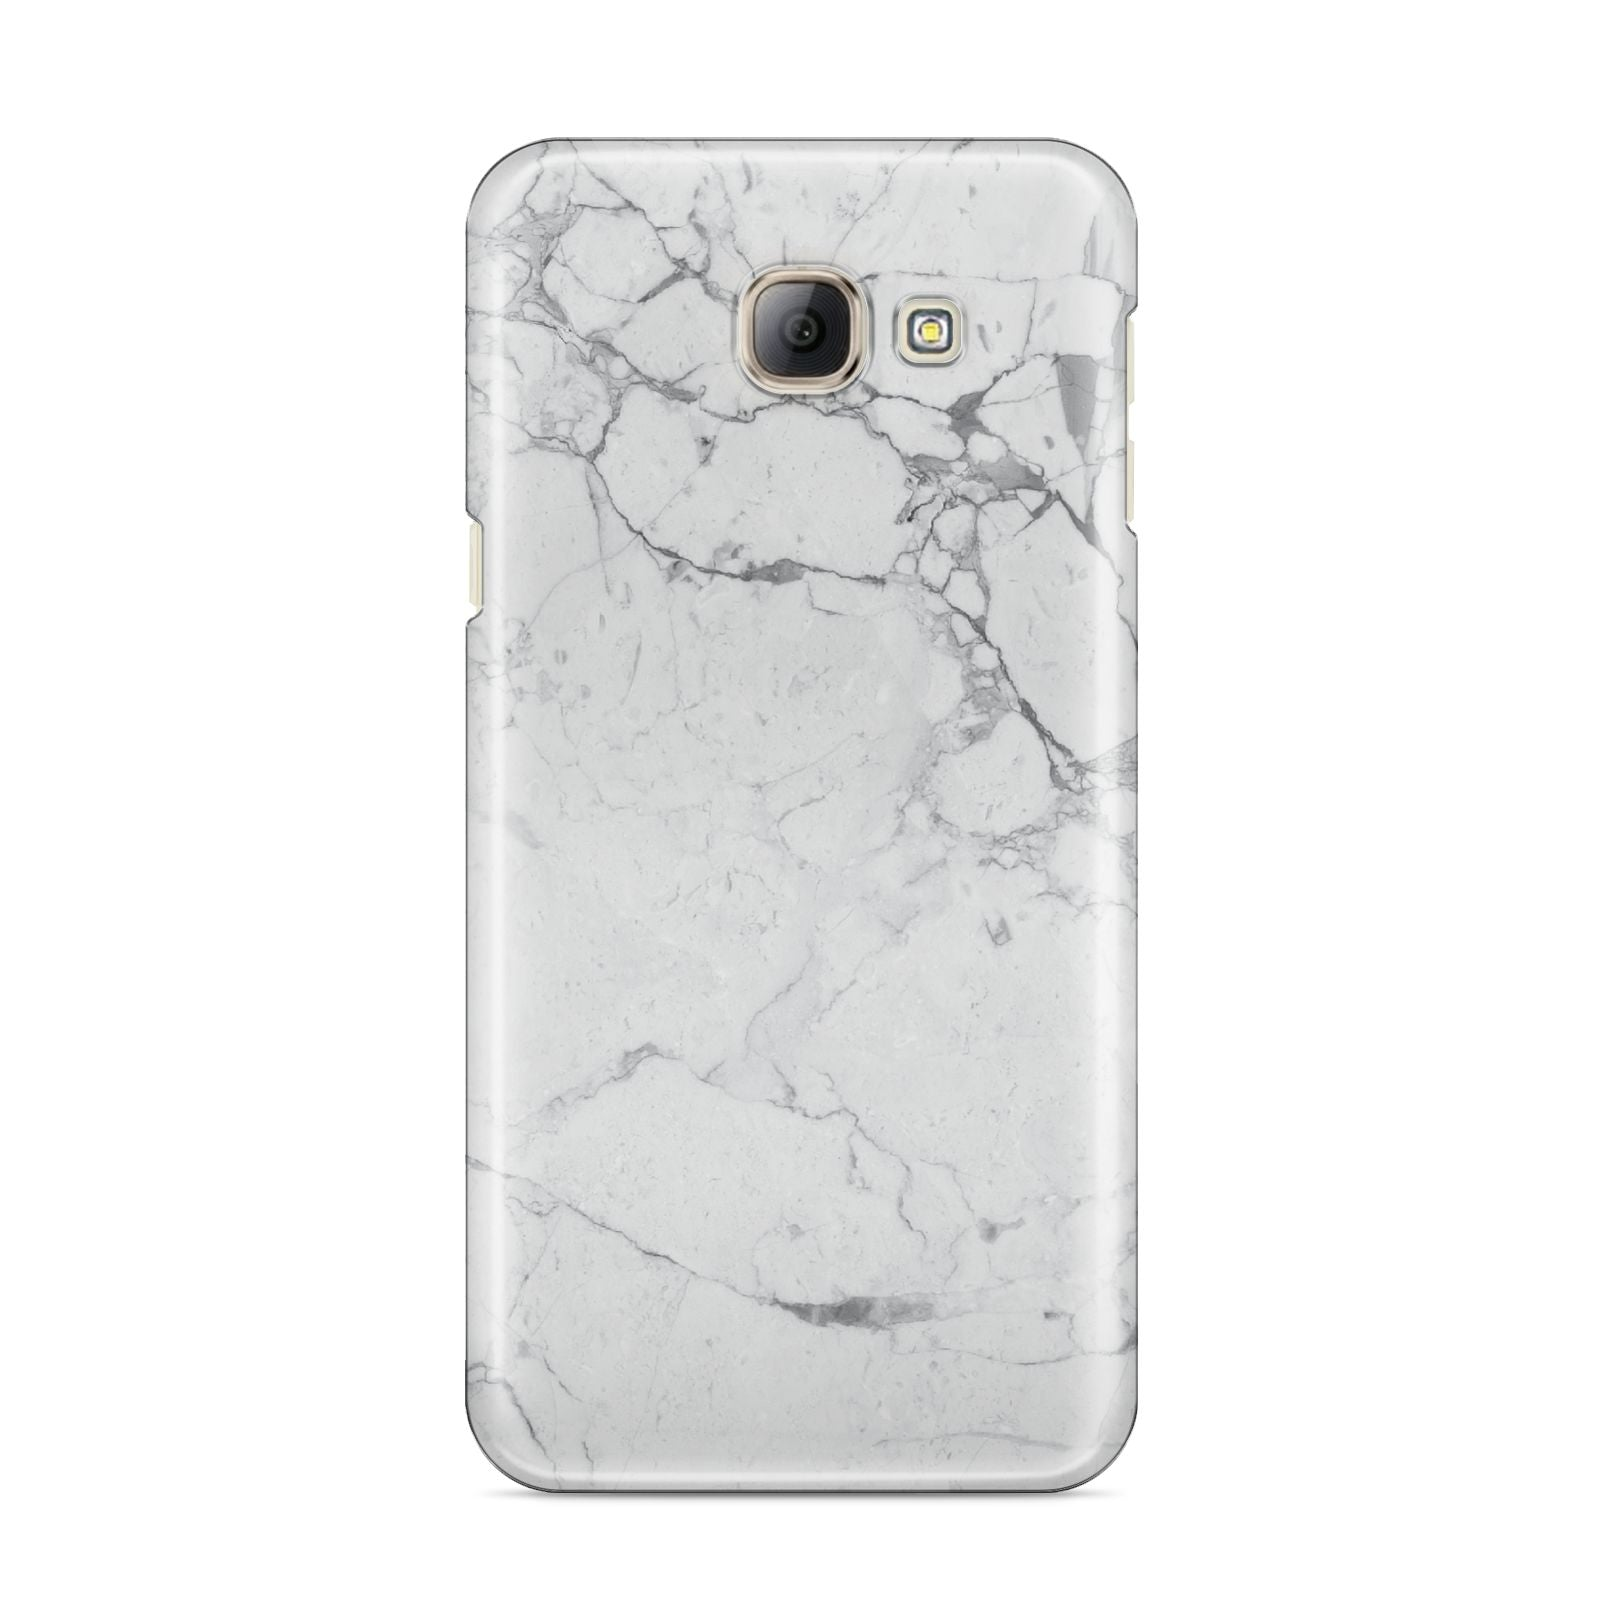 Faux Marble Effect Grey White Samsung Galaxy A8 2016 Case